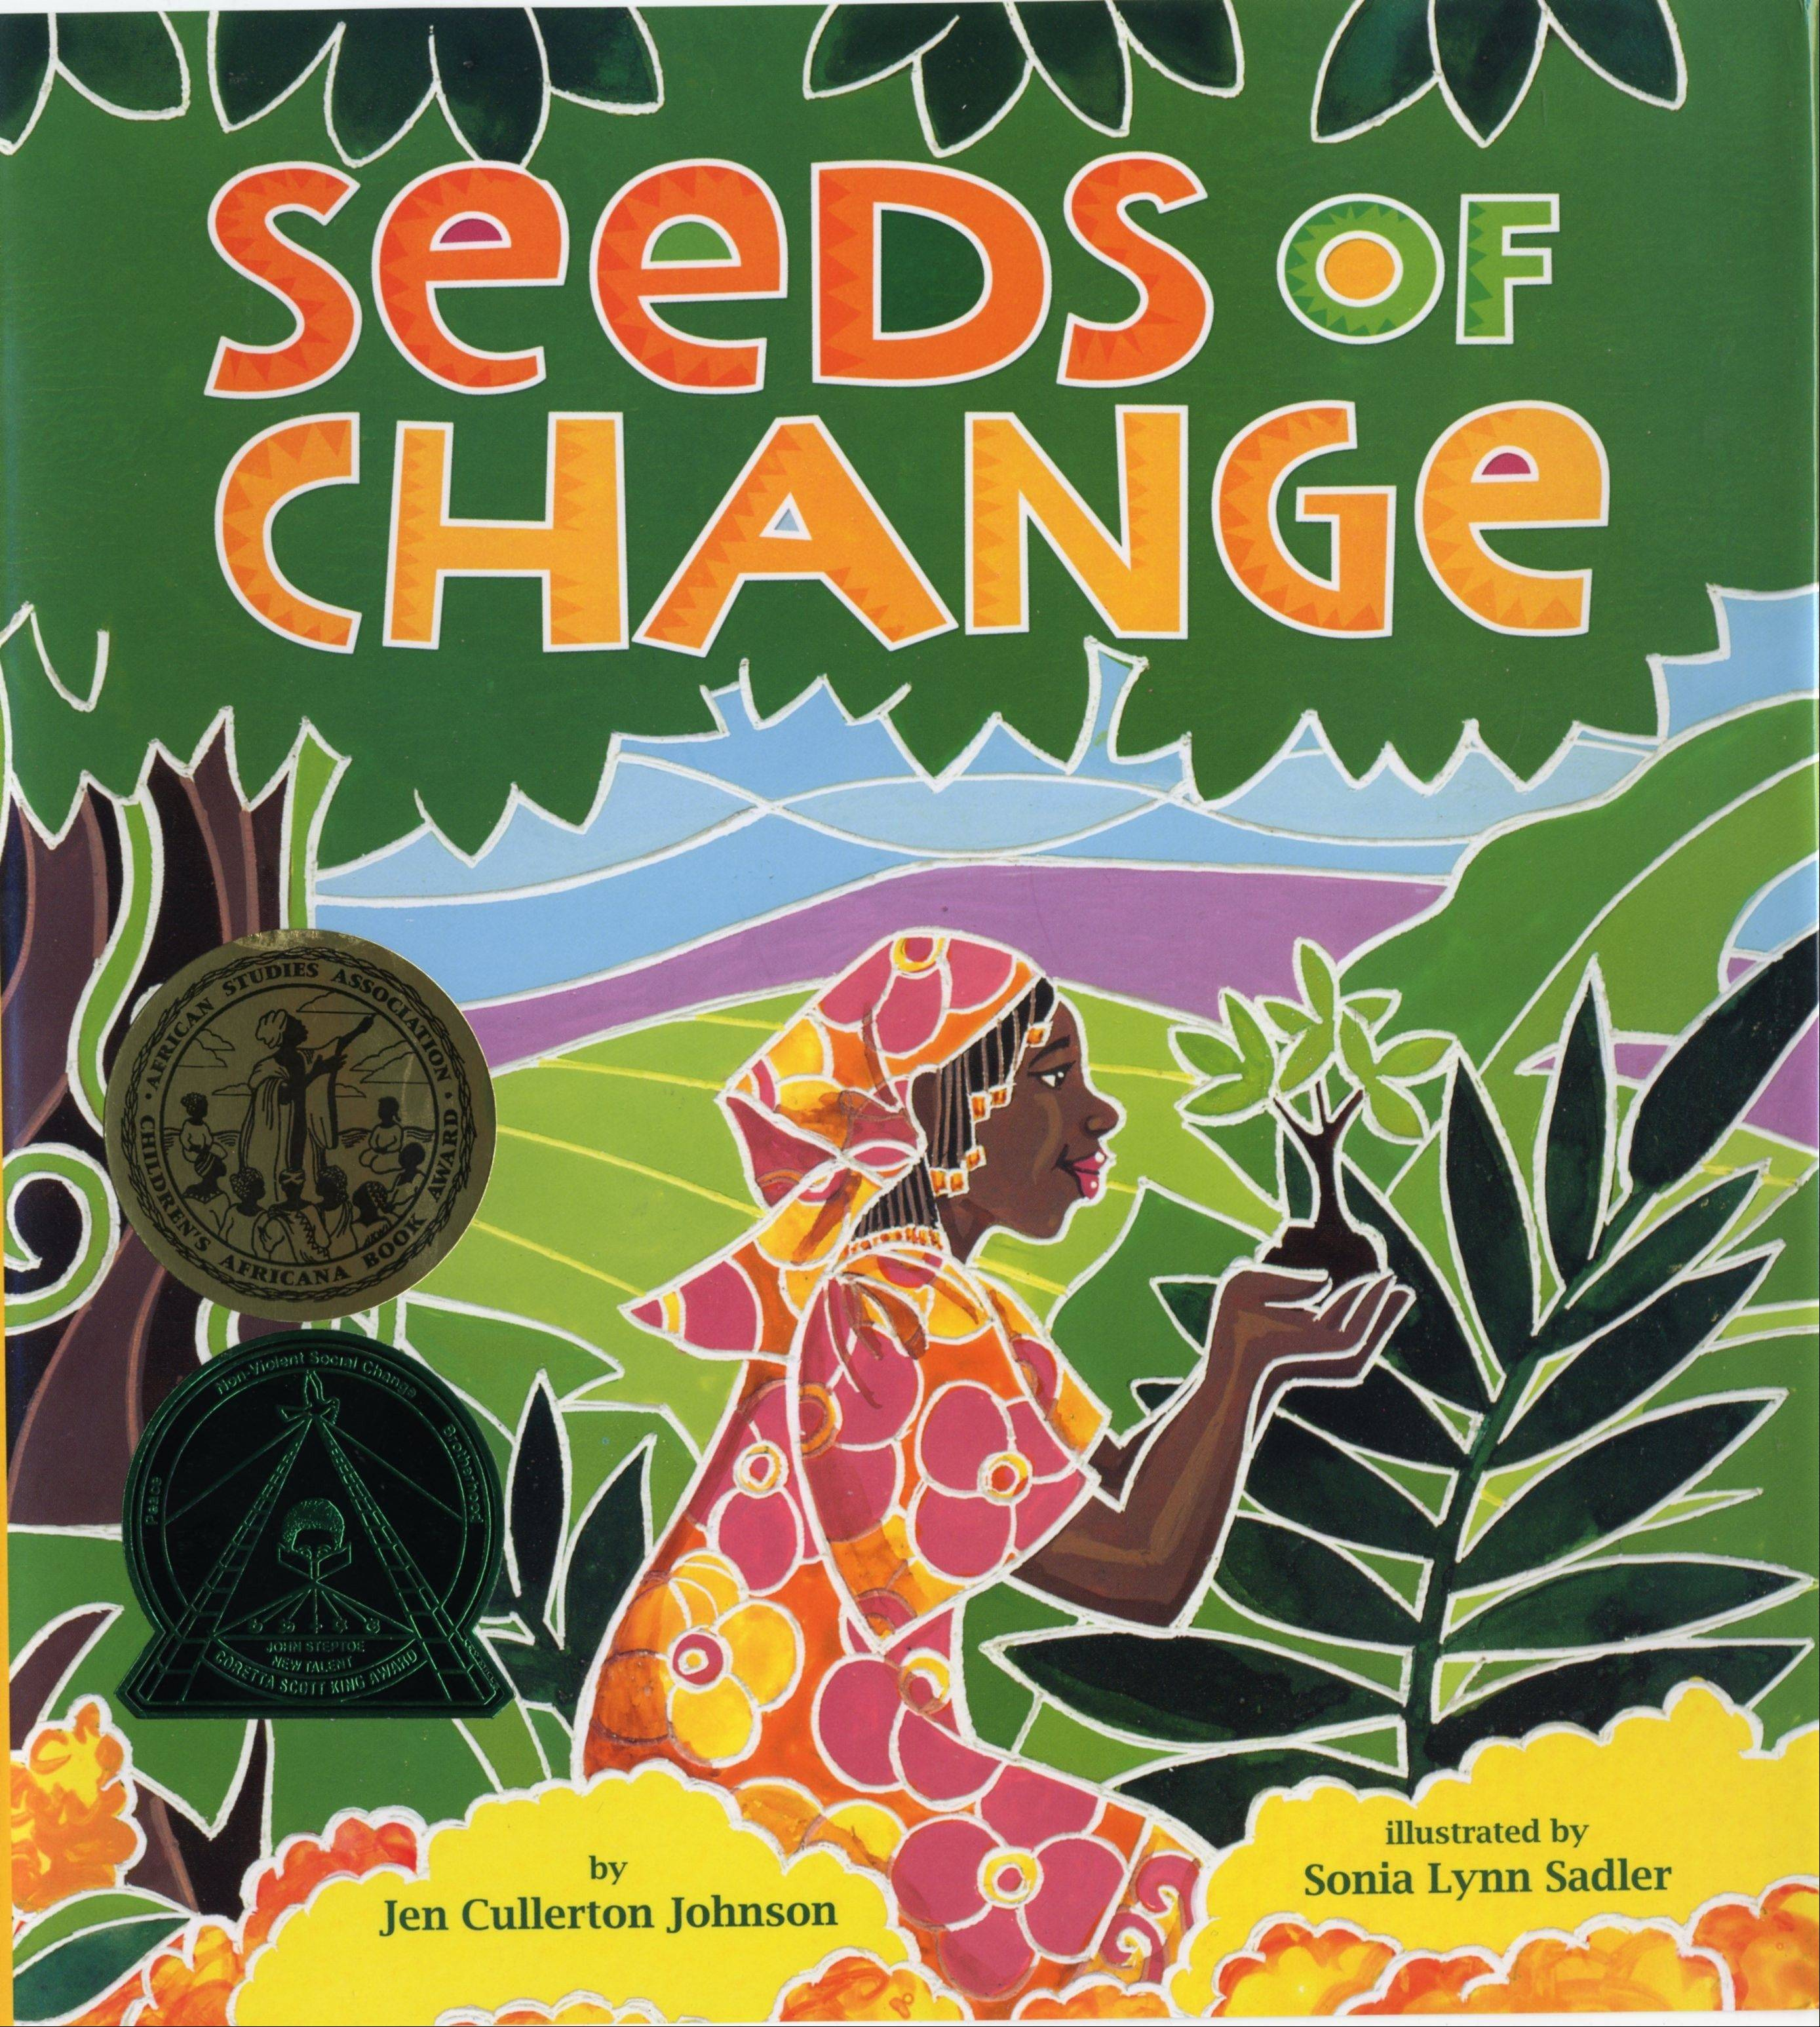 �Seeds of Change: Planting a Path to Peace,� by Jen Cullerton Johnson, is for first- and second-graders